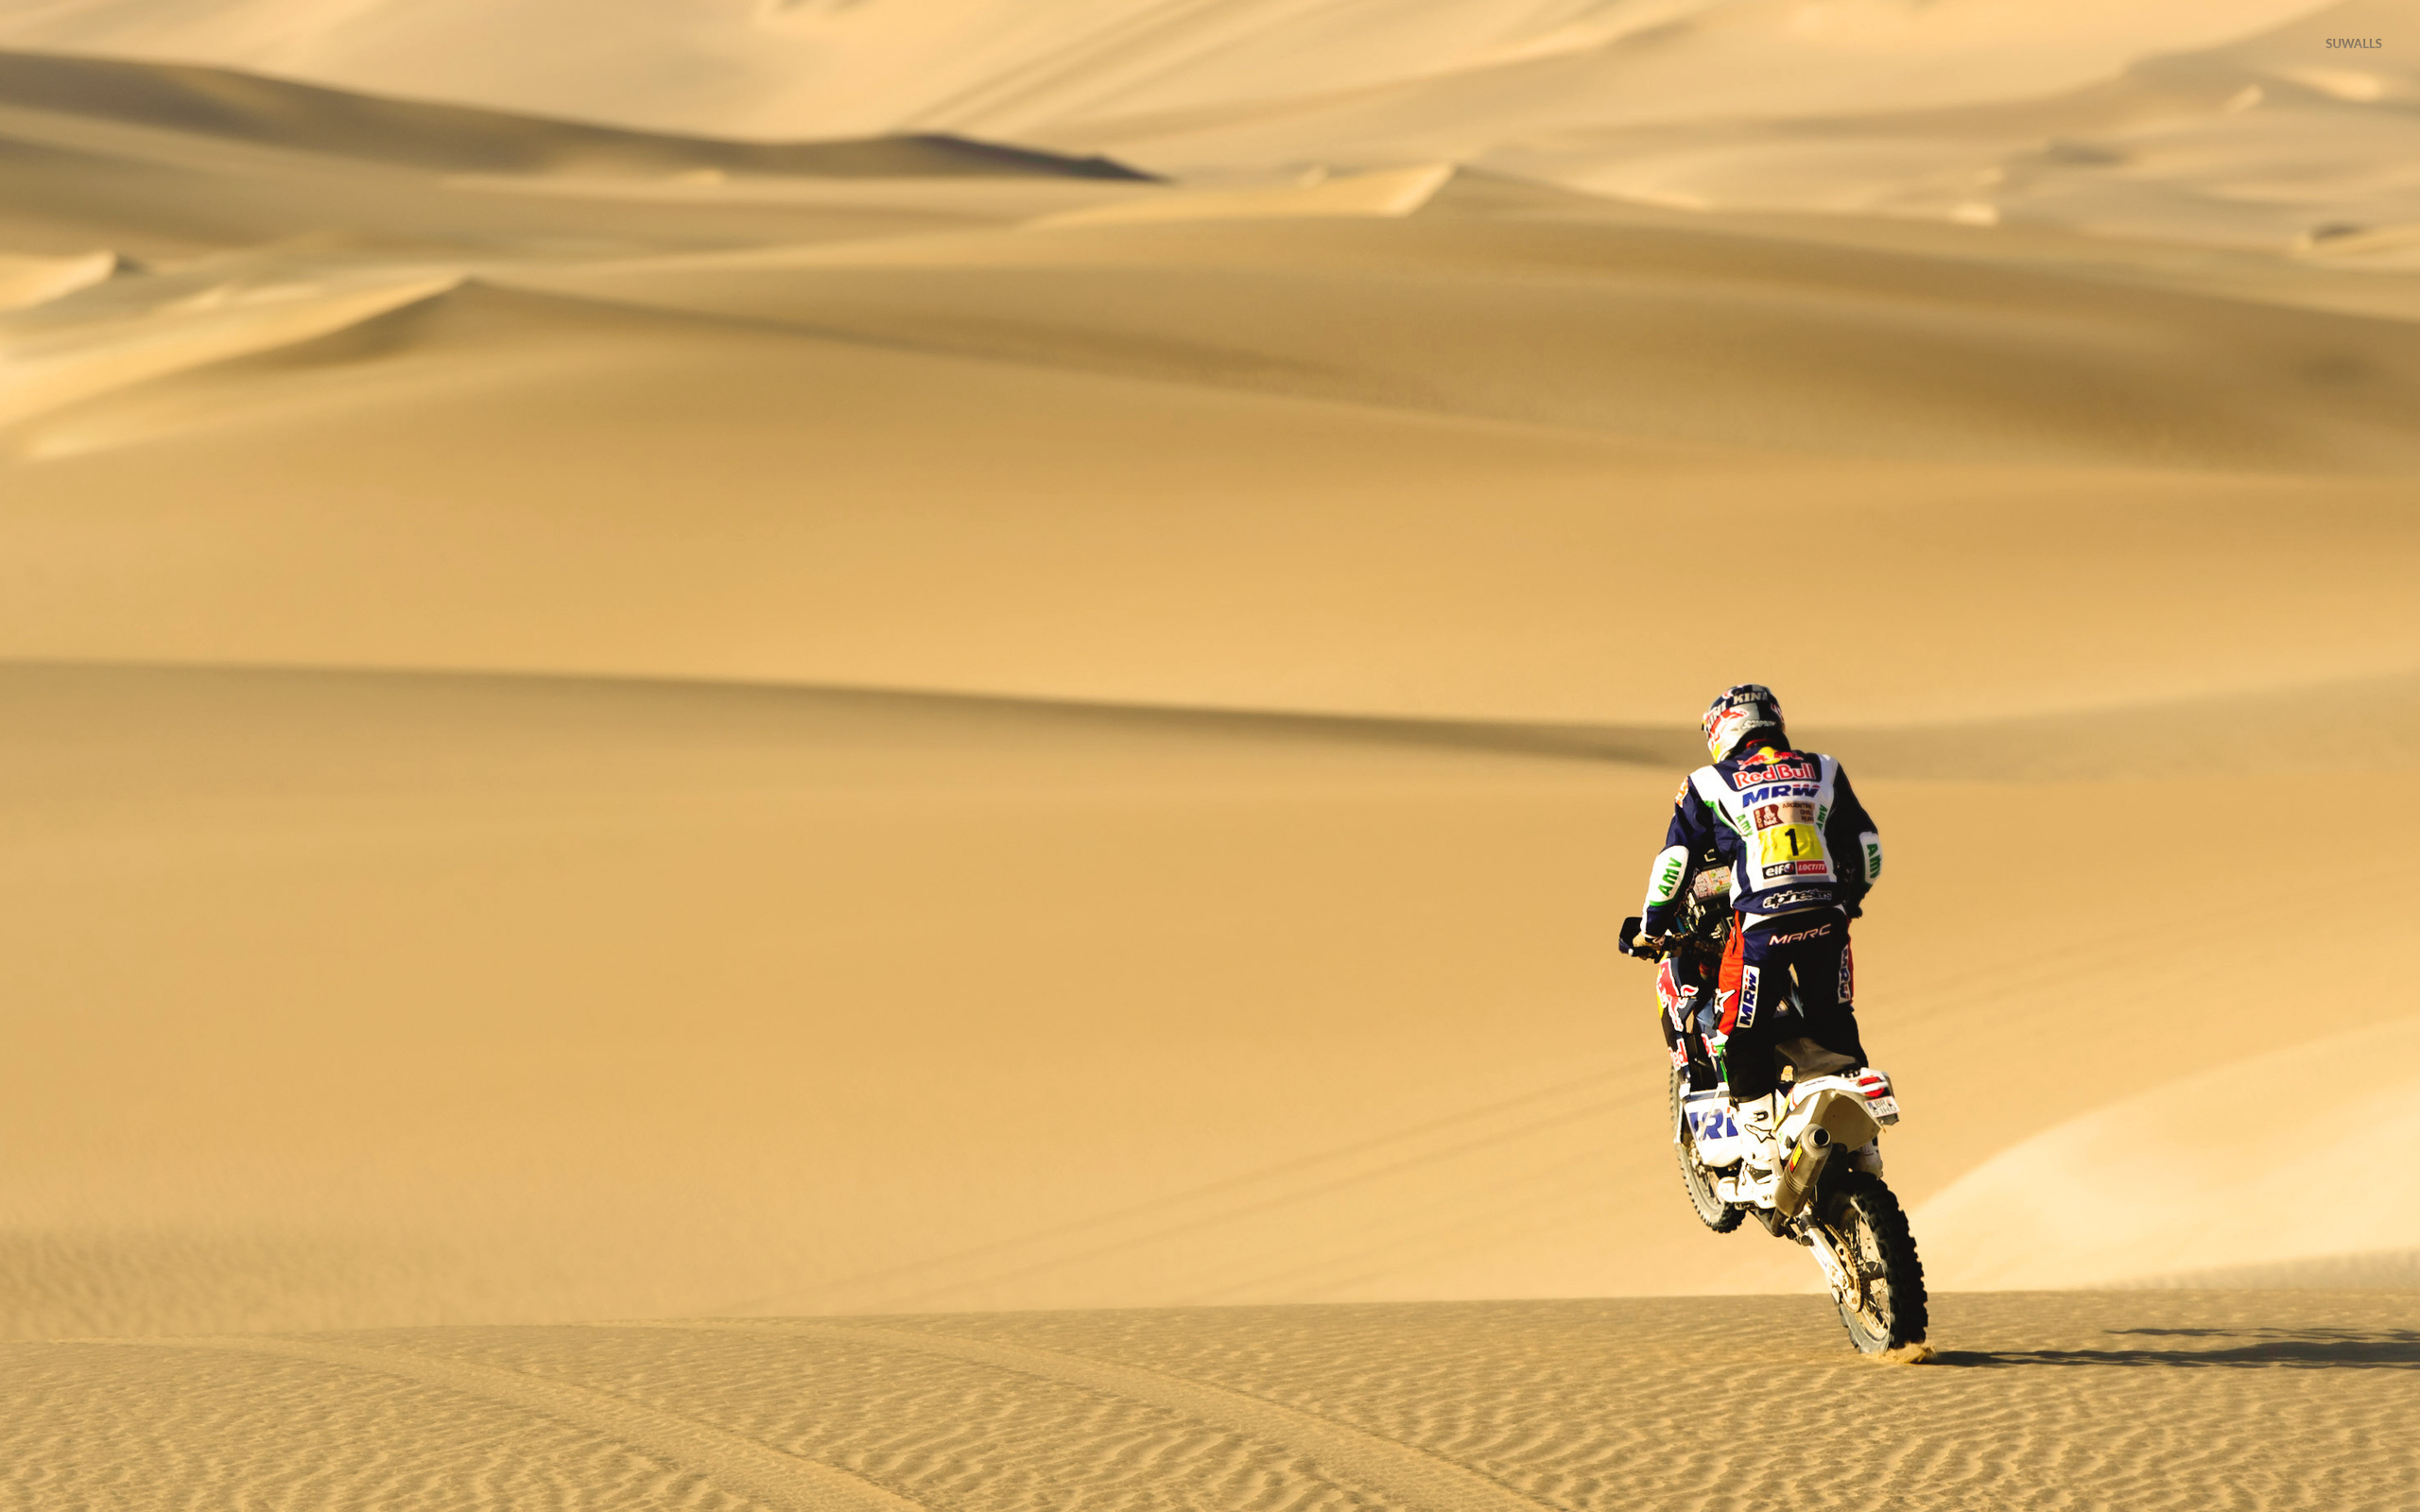 Dirt Bike Wallpaper Girls Dakar Rally Wallpaper Sport Wallpapers 46439